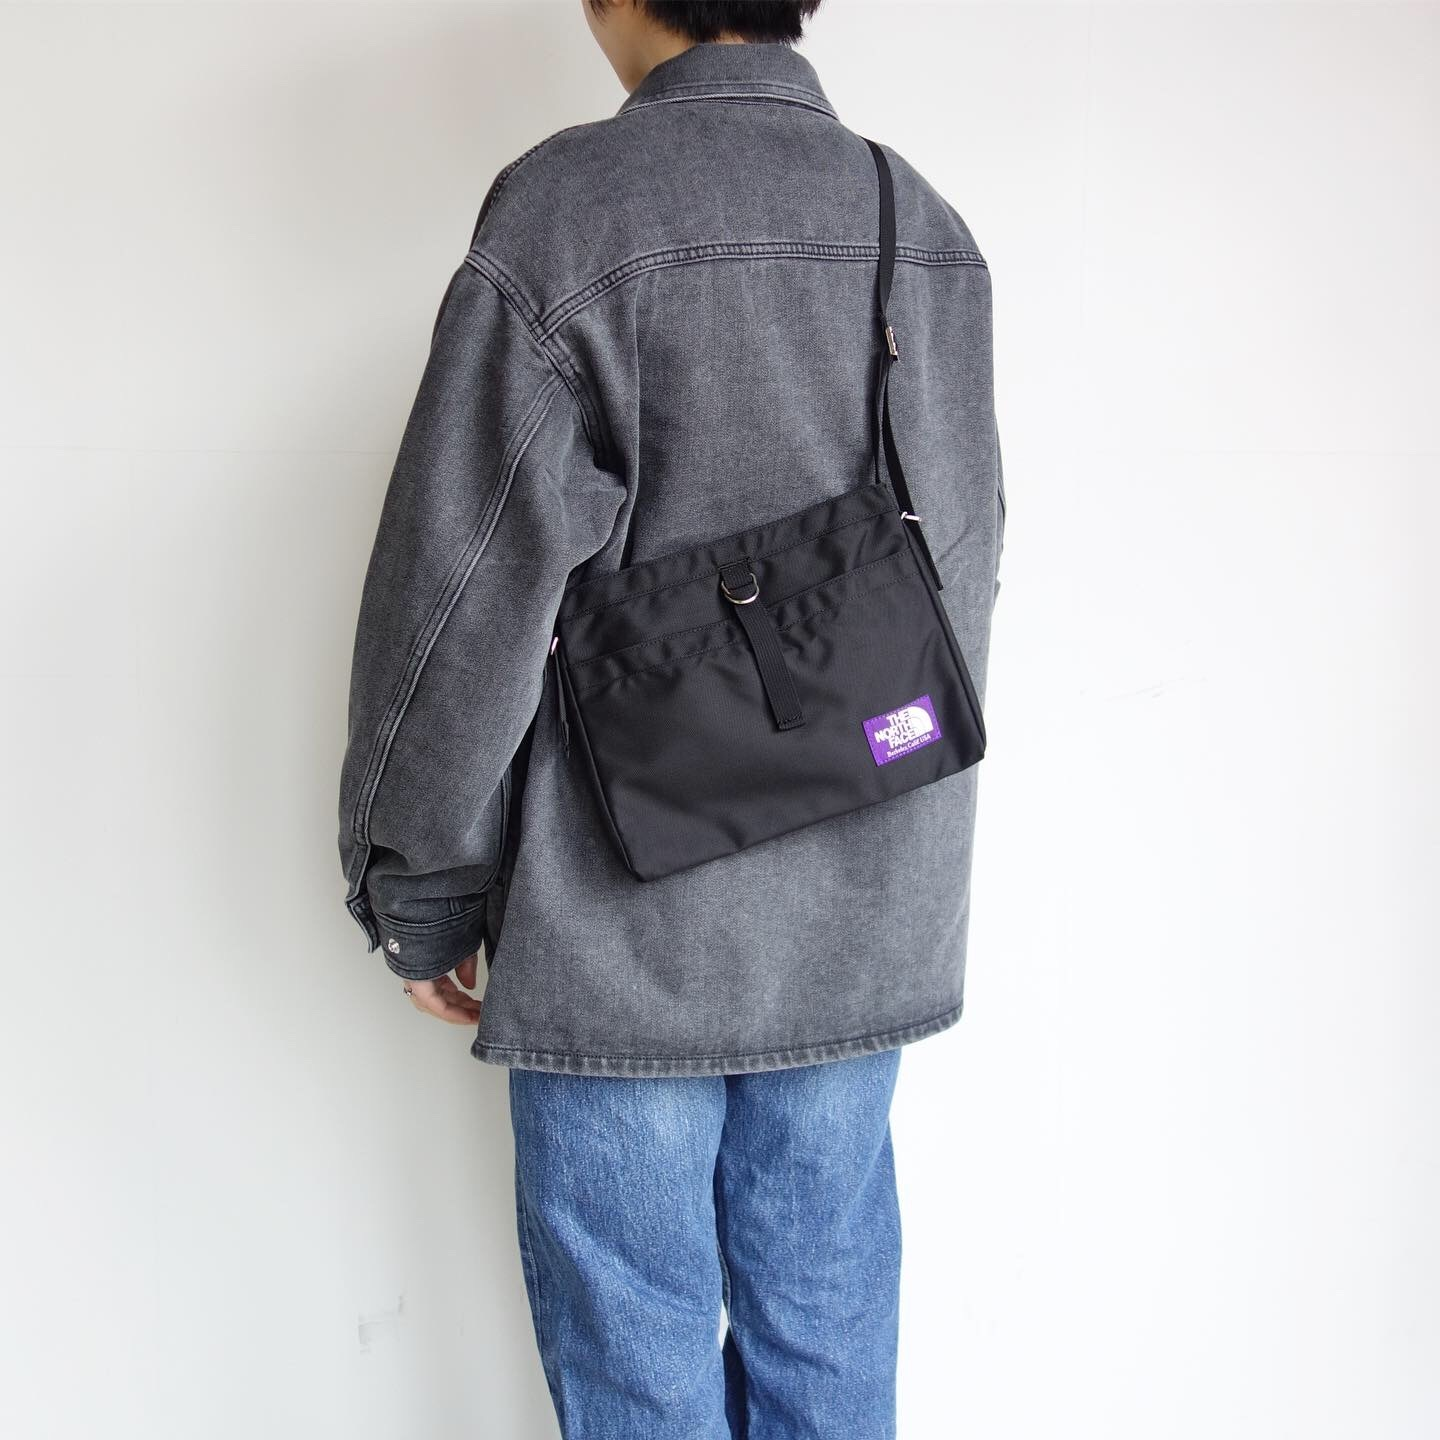 THE NORTH FACE PURPLE LABEL : Small Shoulder Bag_a0234452_15575458.jpg